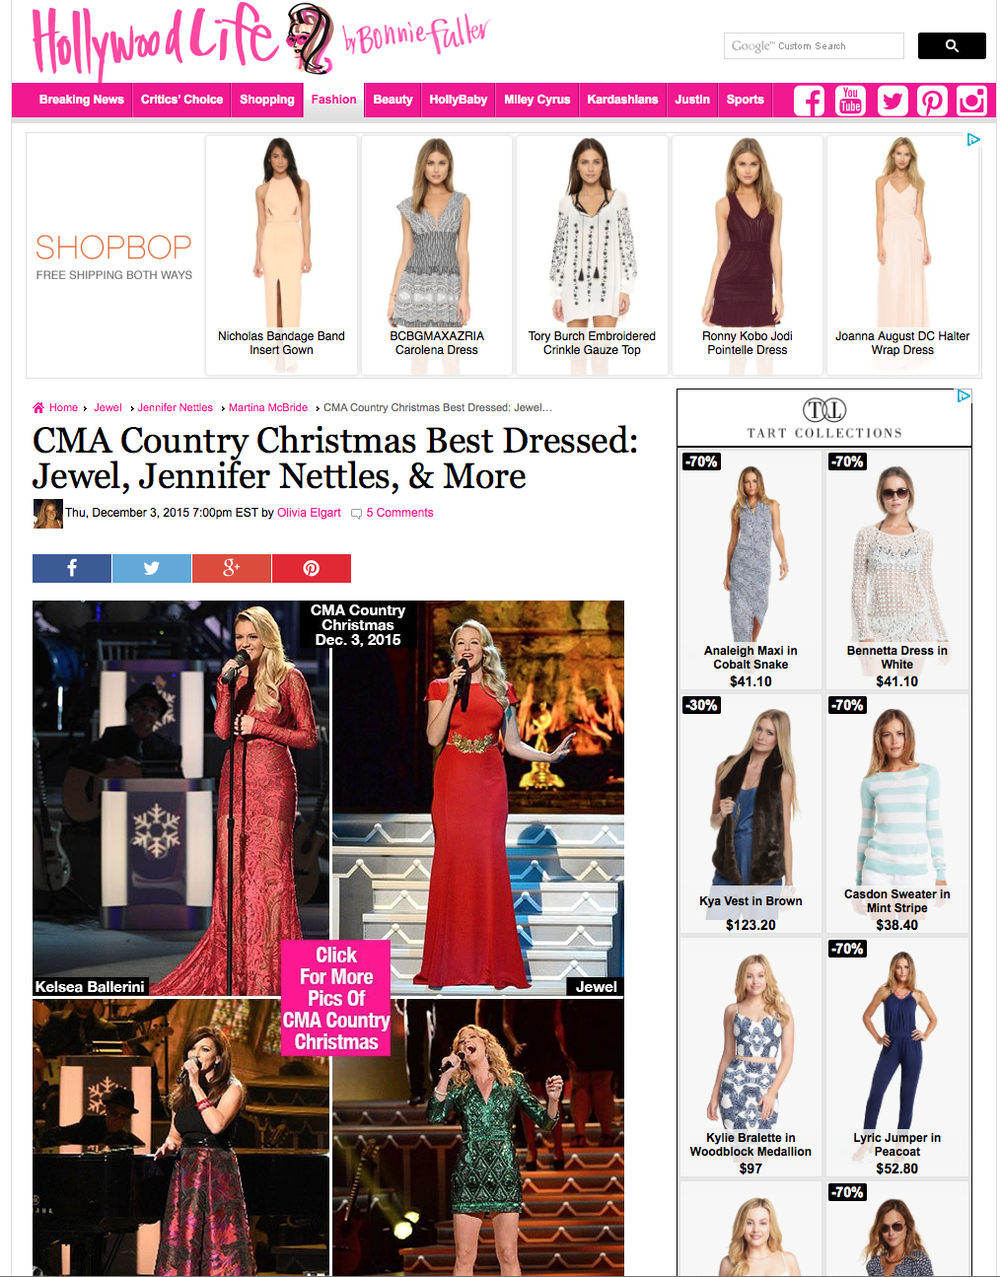 """Next up, Kelsea, who literally stole the show in a red,long-sleeve lace gown which featured a mini slip underneath a long sheer overlay that was completely see through, showing off her toned legs! We are also obsessed with the long running train of the dress.""  -- Hollywood Life, 2015"